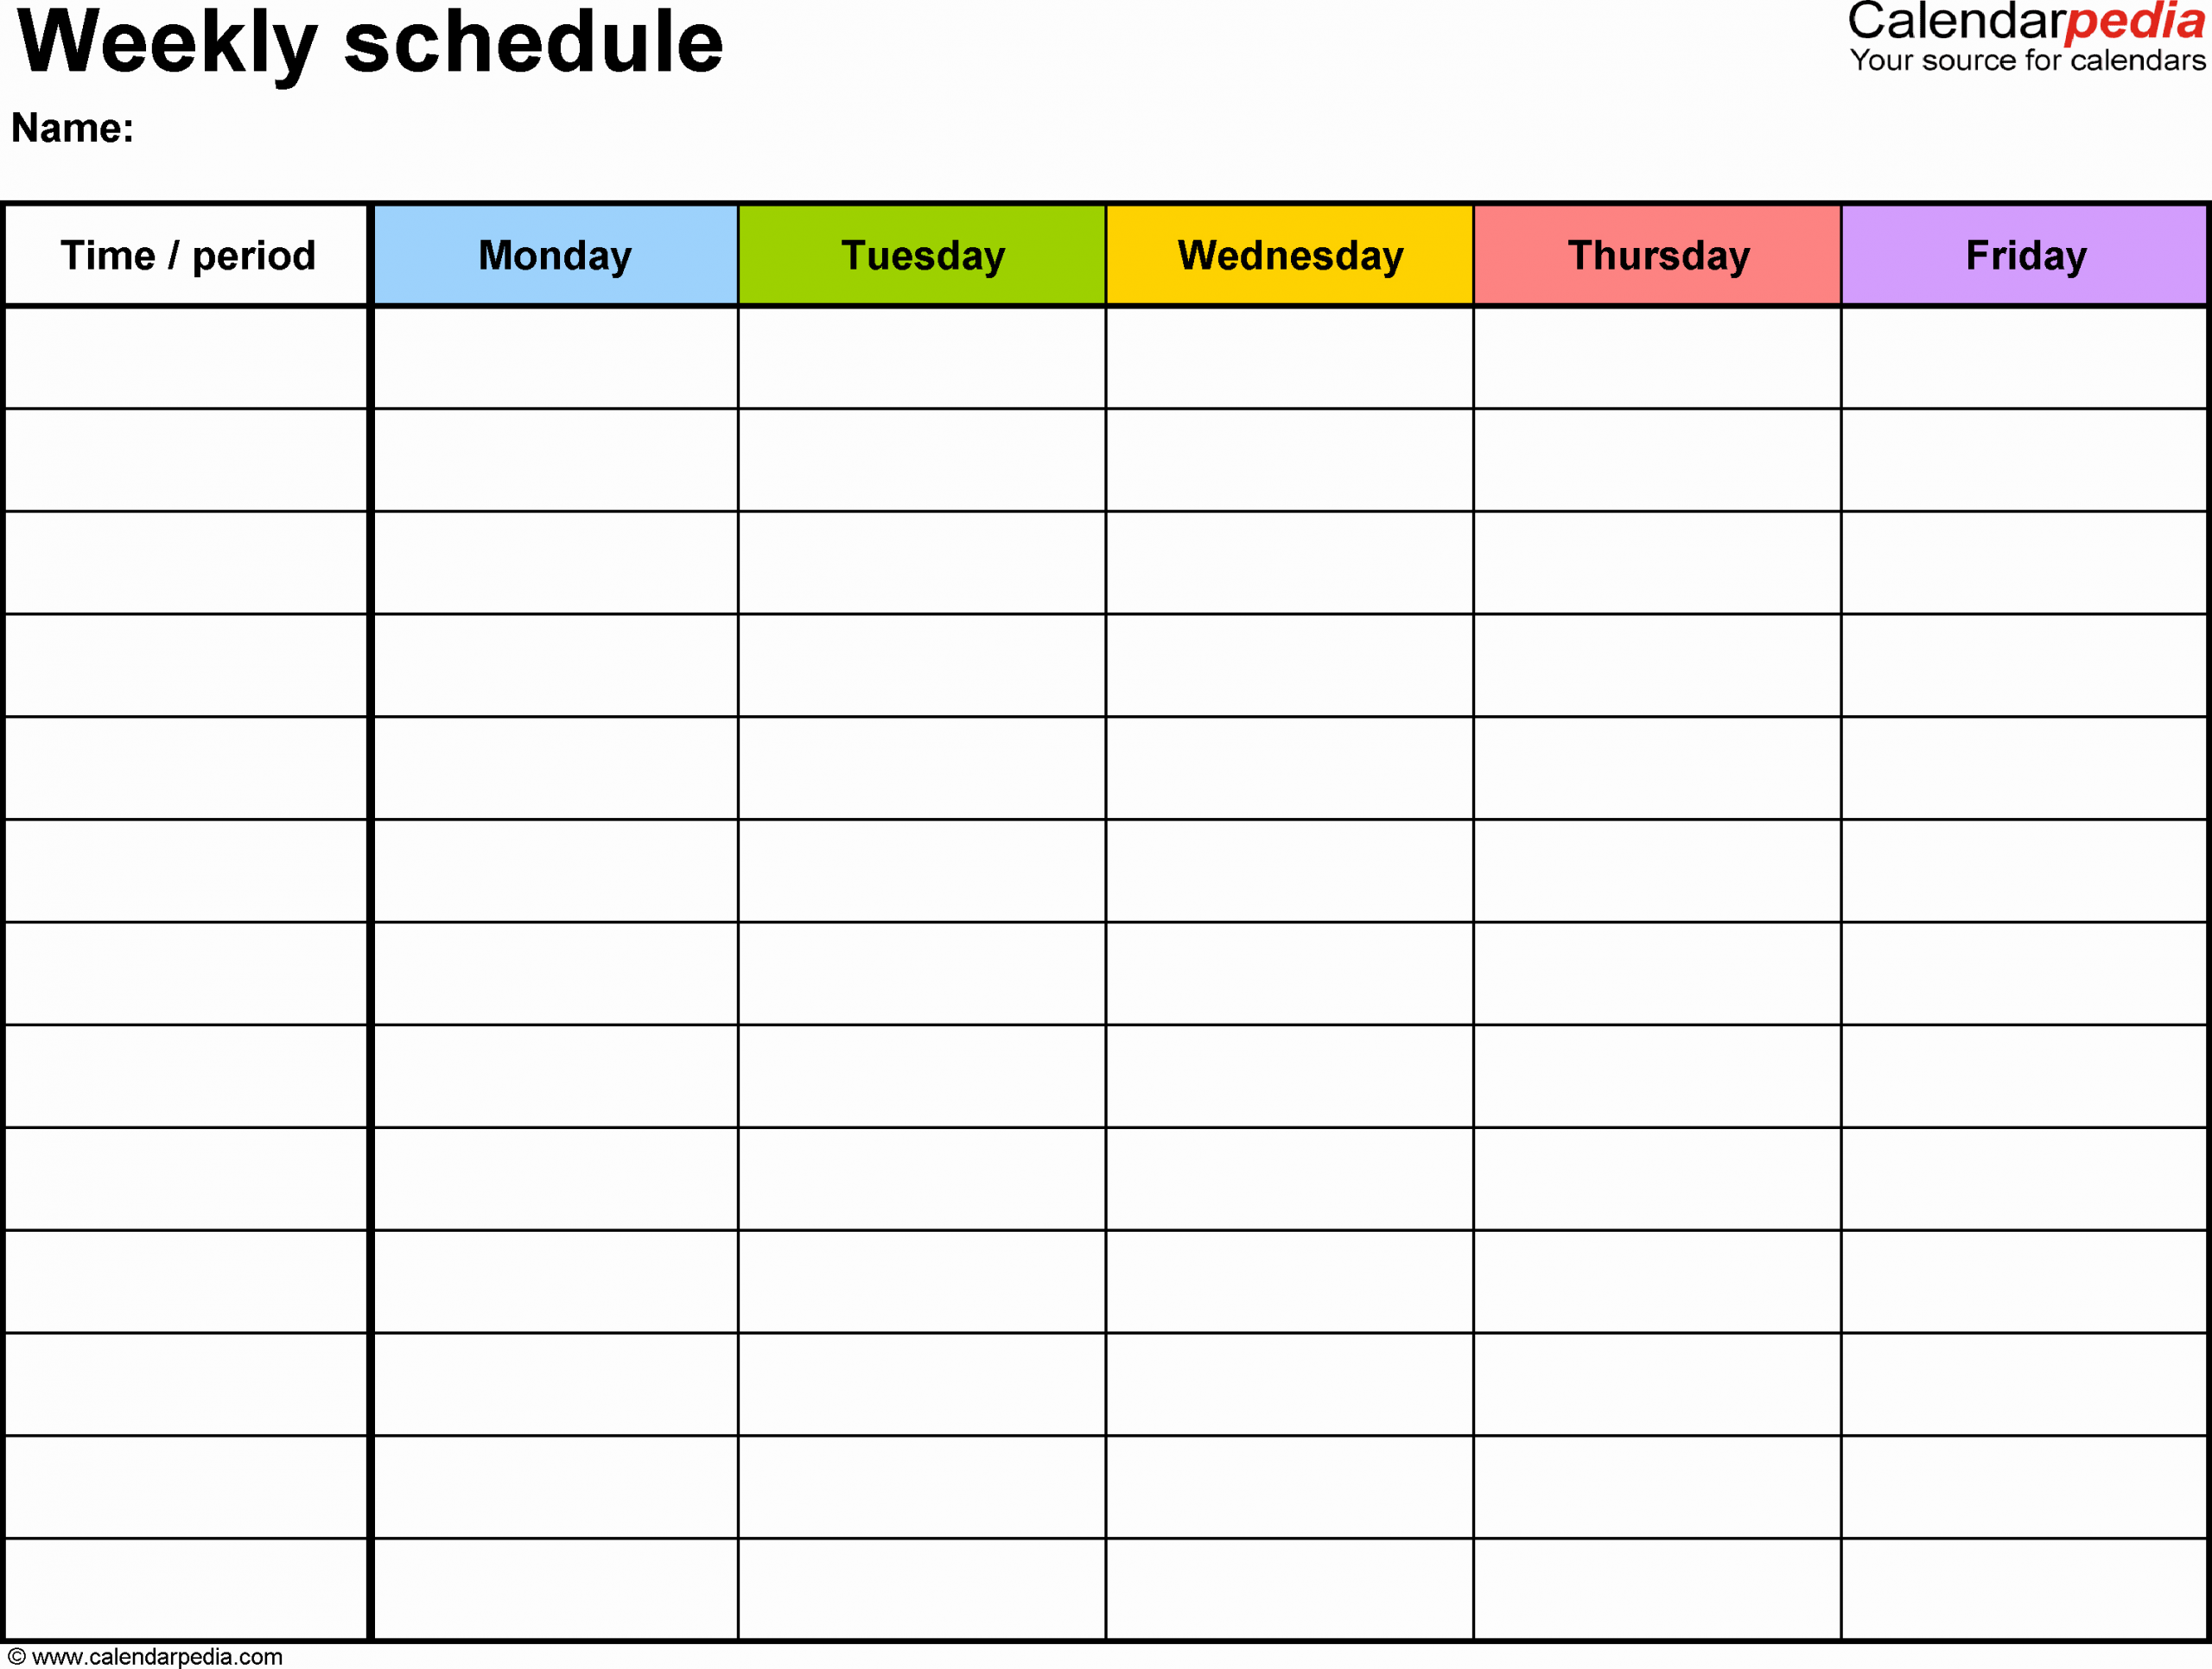 Class Schedule Template Word Awesome Weekly Schedule Template for Word Version 1 Landscape 1